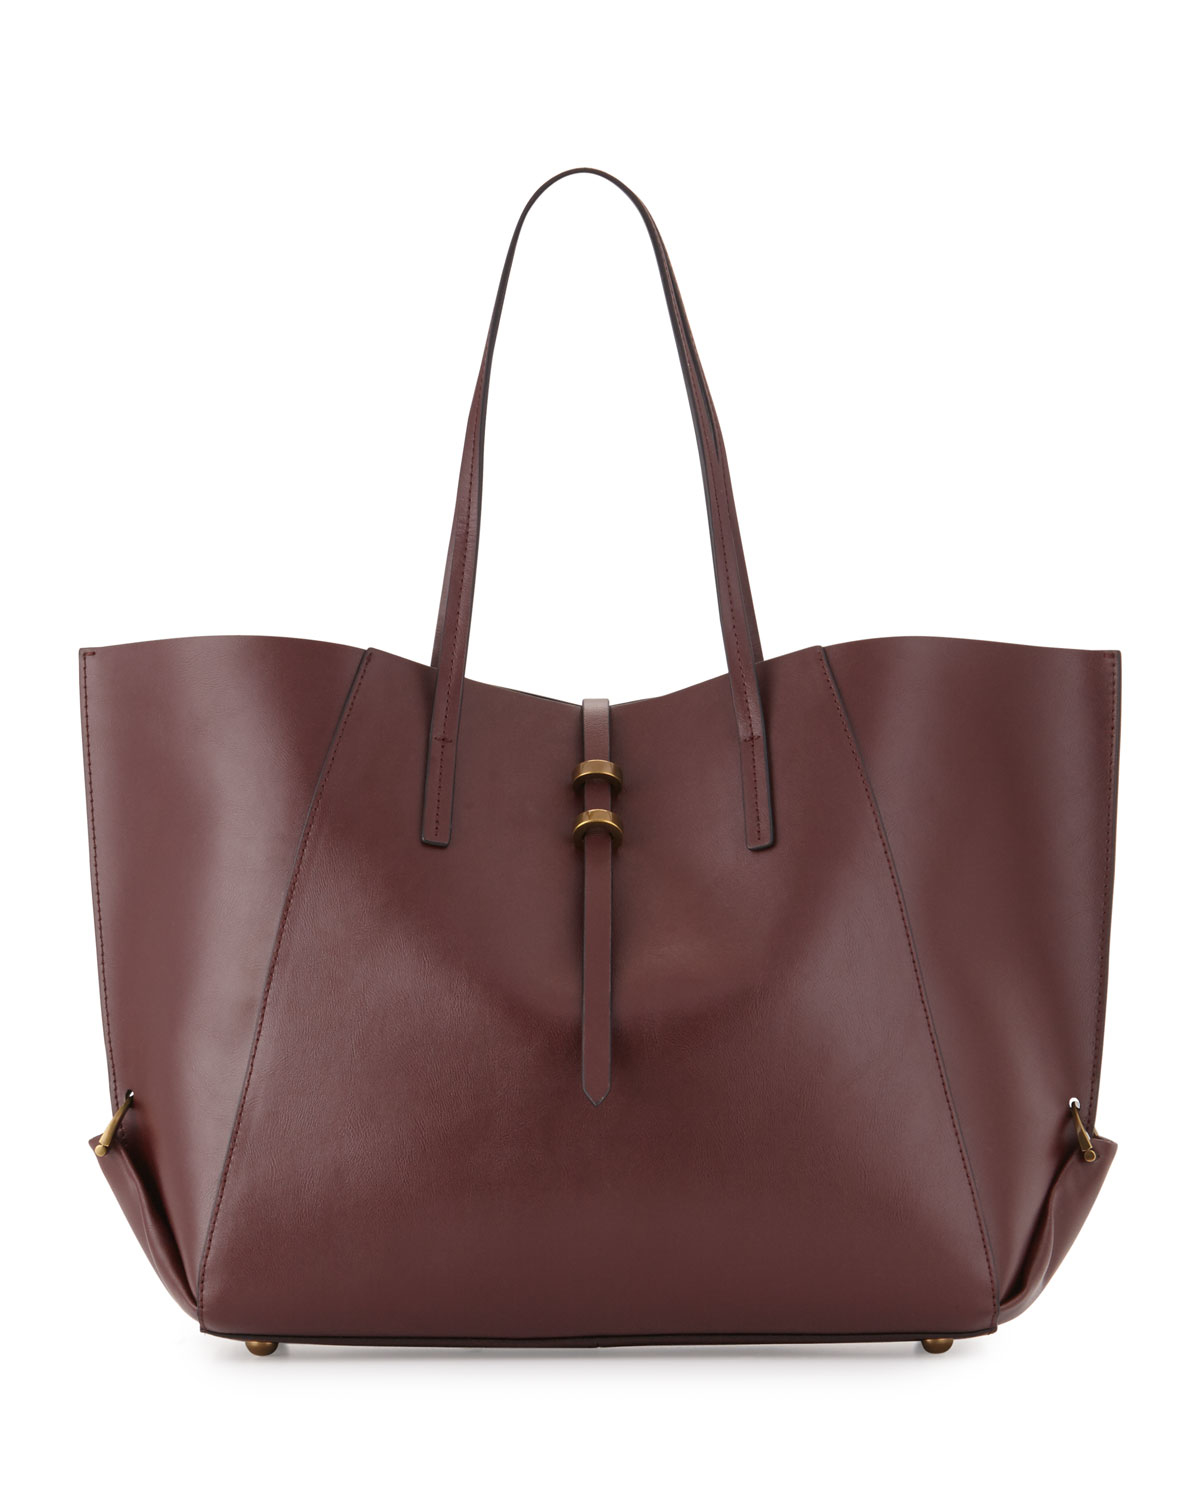 Zac zac posen Eartha Leather Shopper Tote Bag in Brown | Lyst